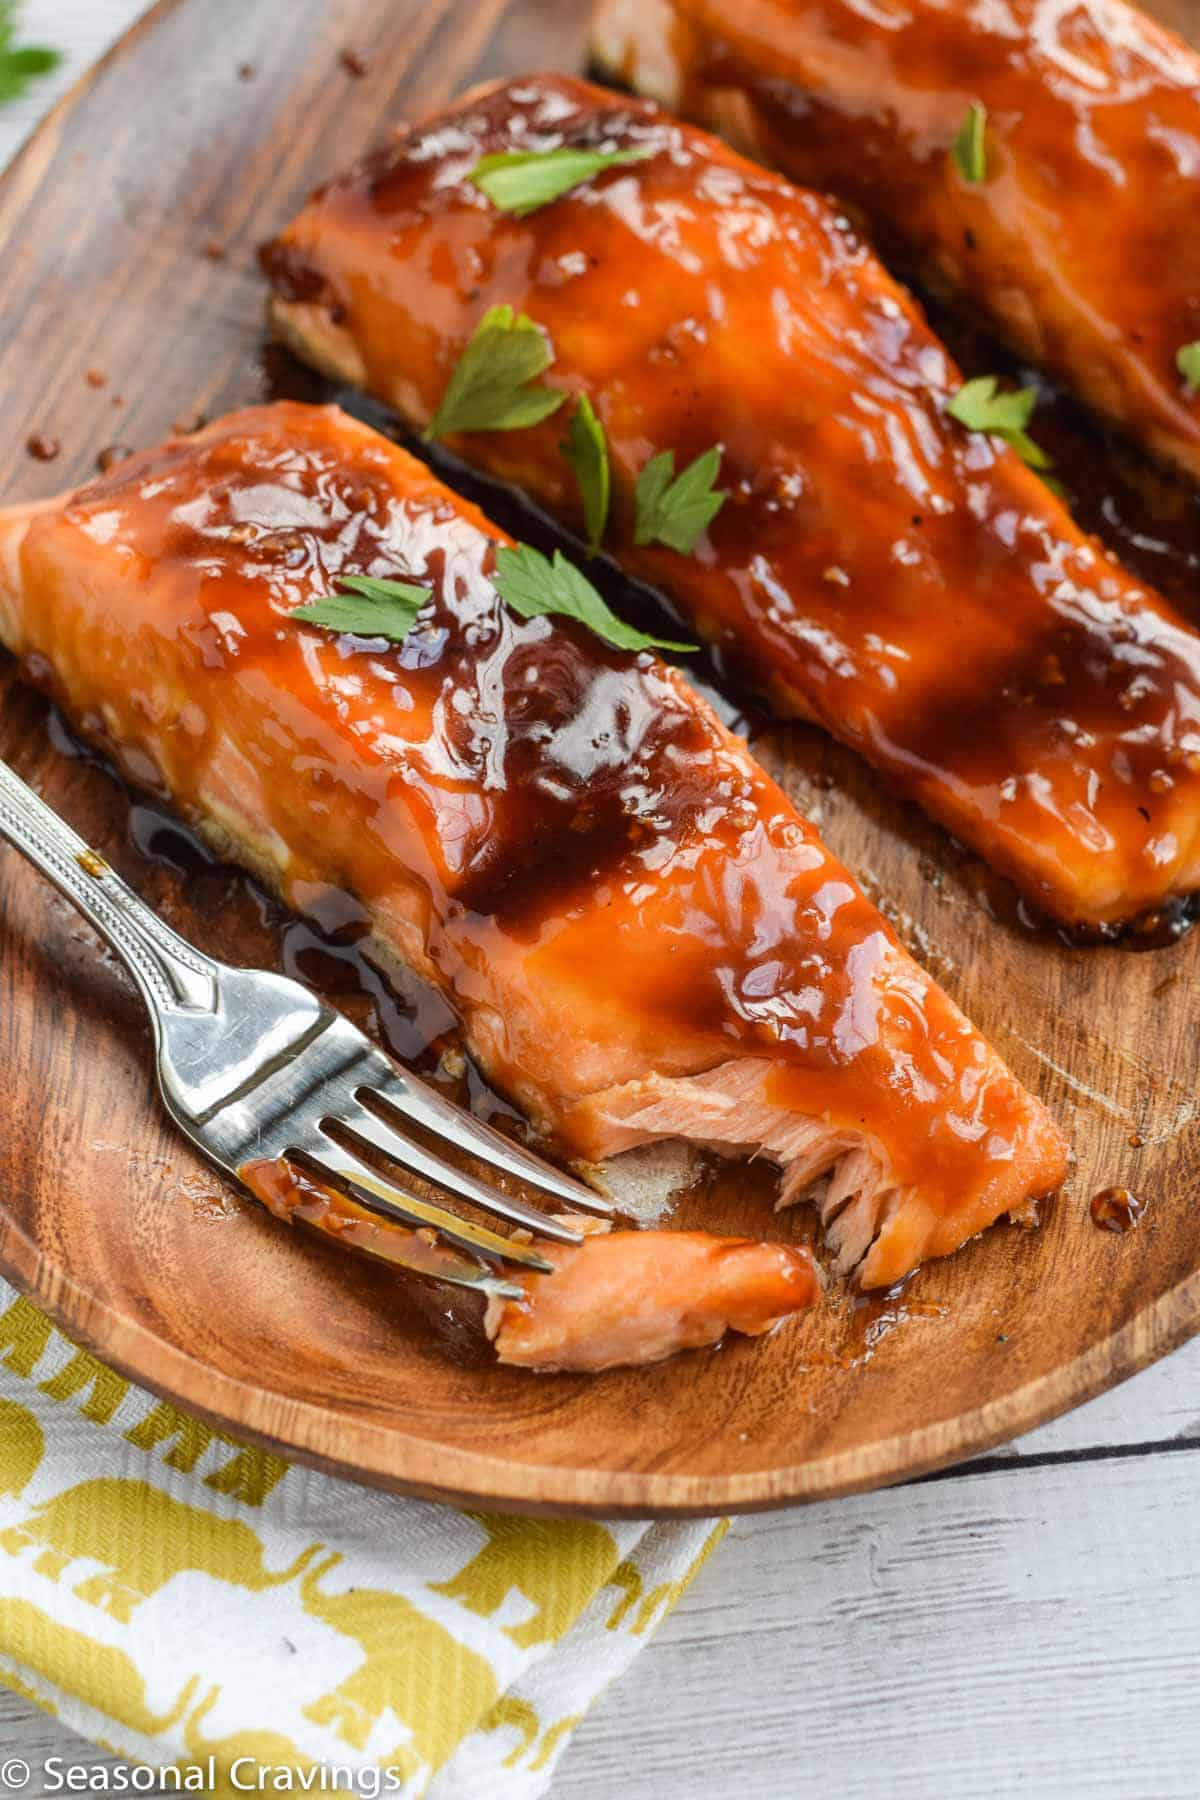 Close up of Salmon with sticky sweet glaze and fork